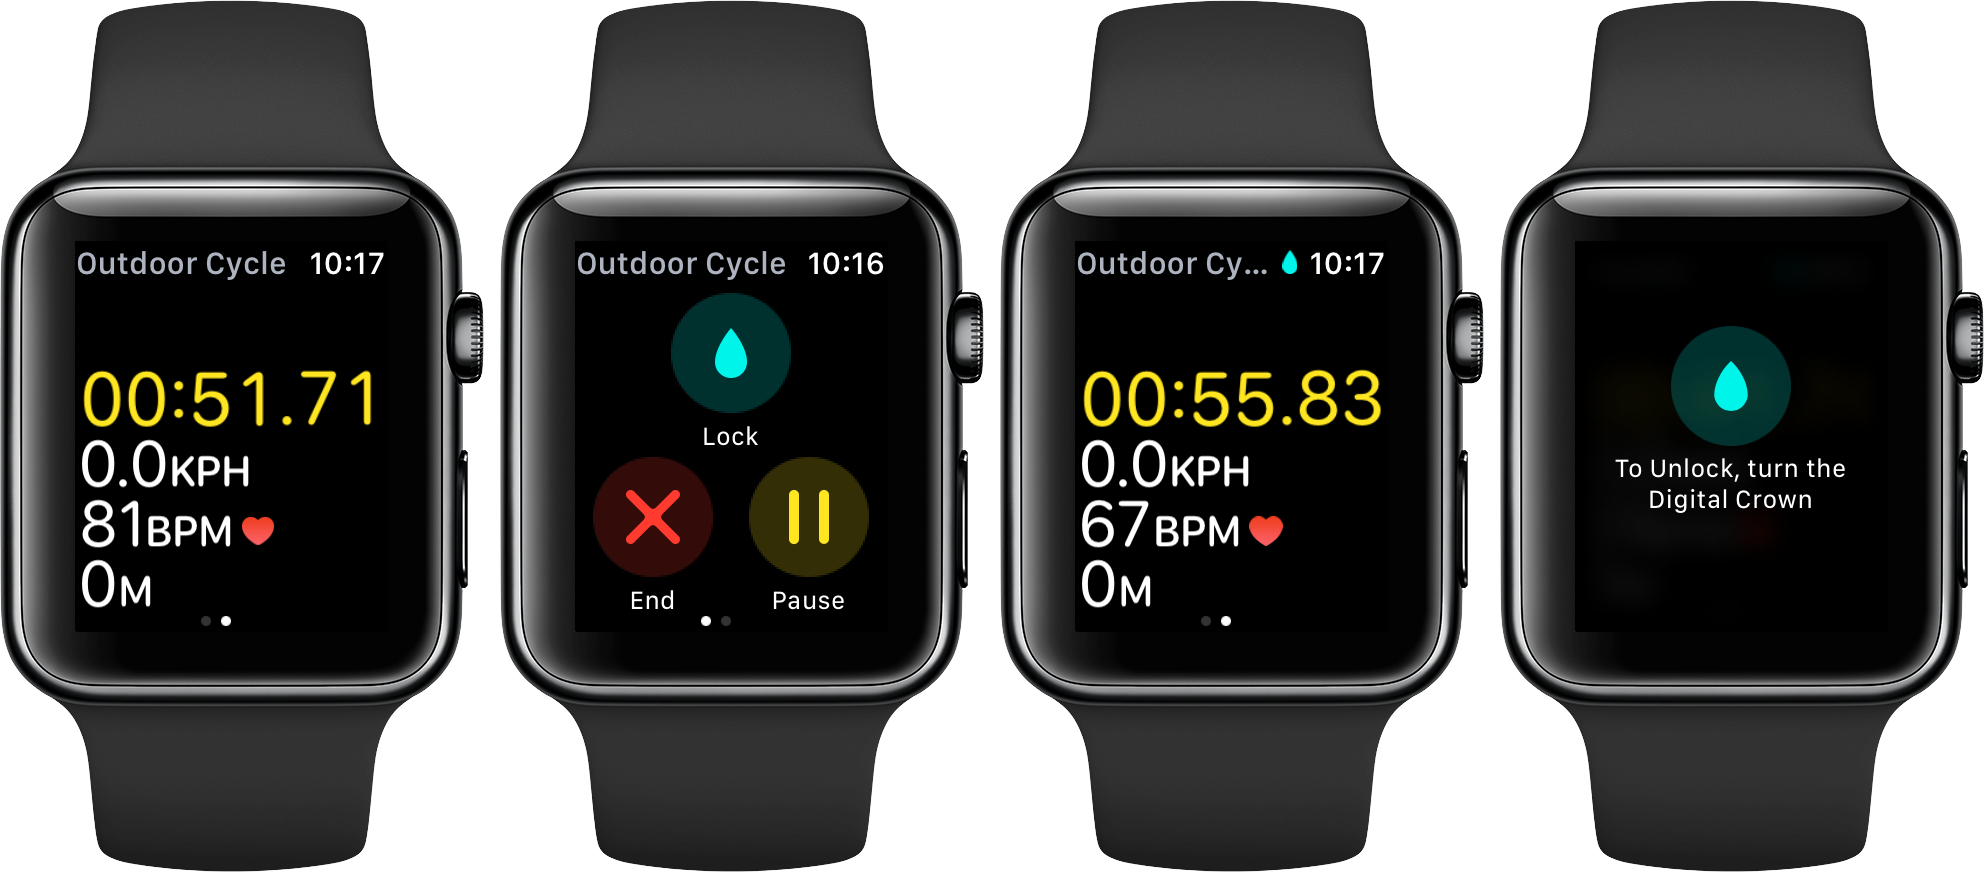 watchOS 3 Workout lock space gray Apple Watch screenshot 001